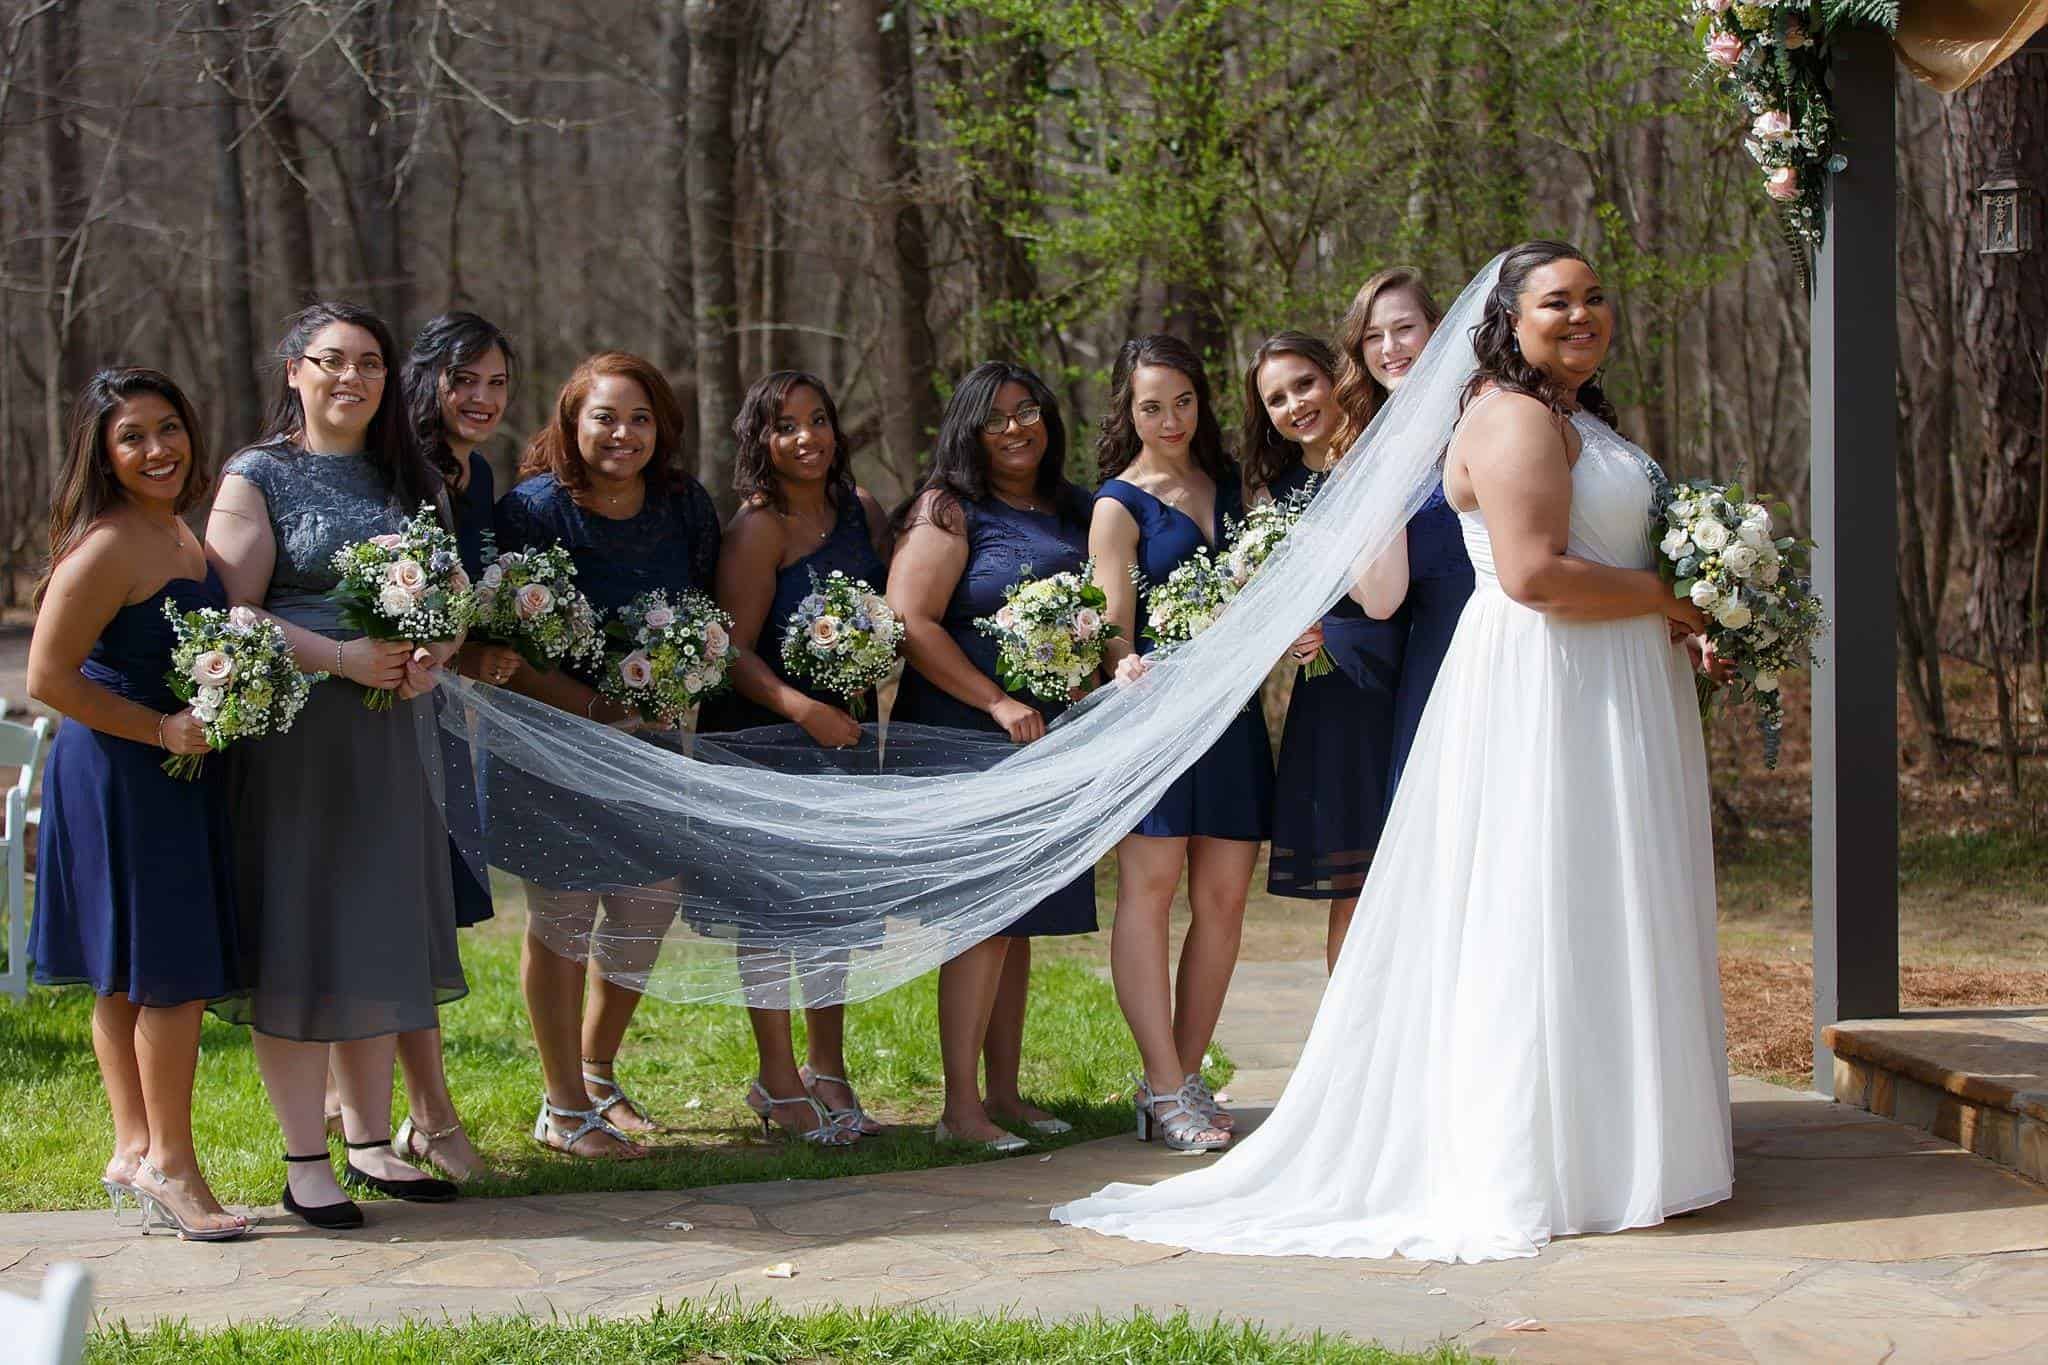 Bride with Bridesmaids in Blue Bridesmaids Dresses holding Cathedral Length Veil with Polka Dots